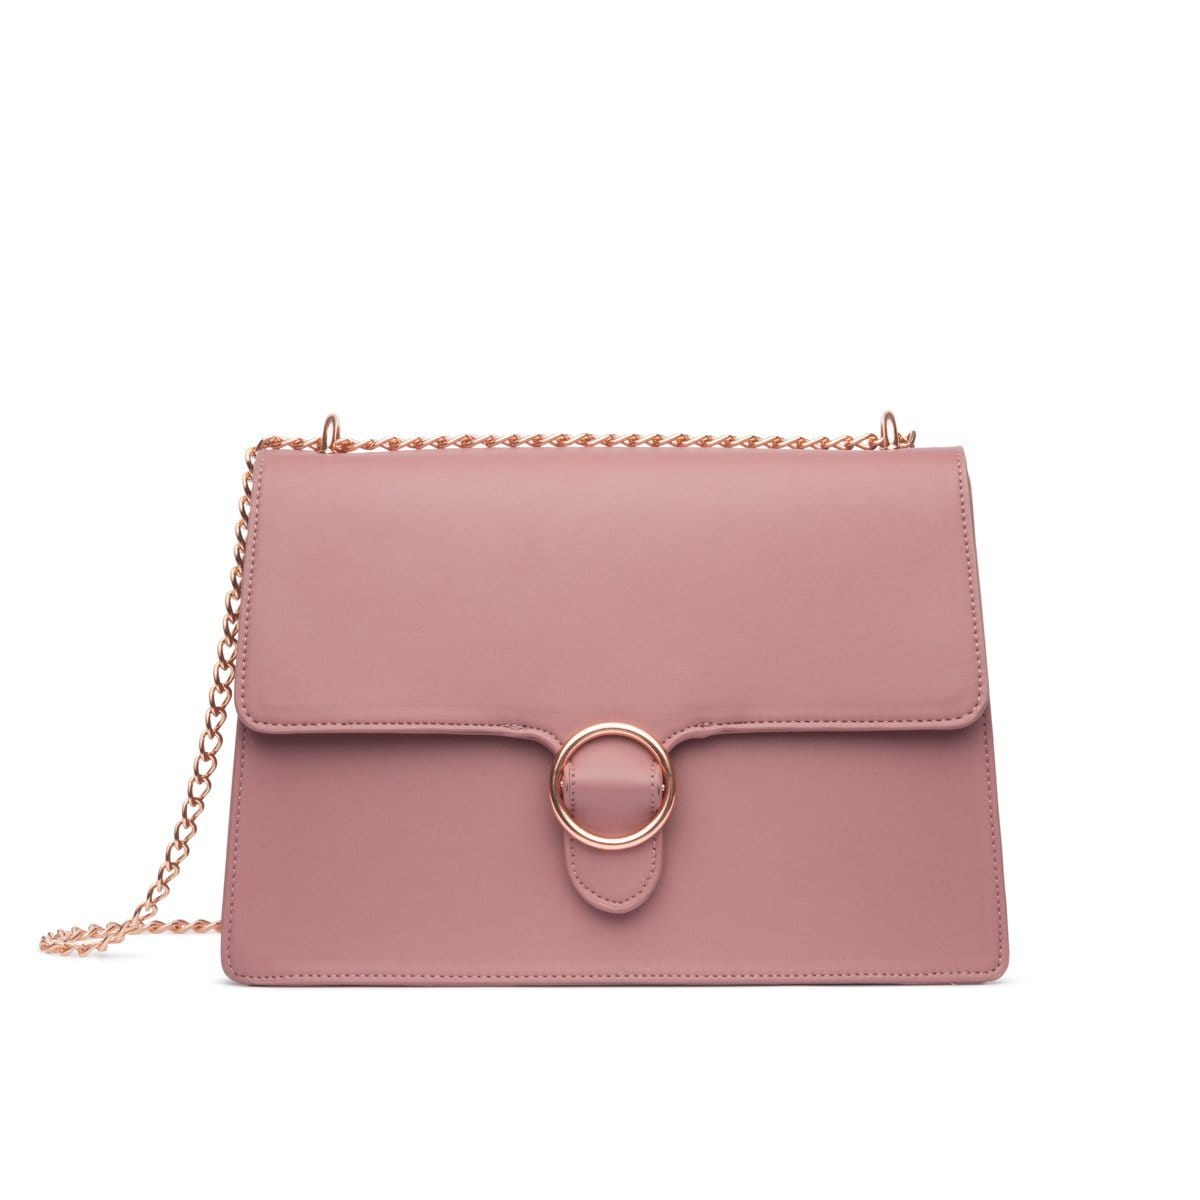 Mauve Mara Handbag Rose Gold